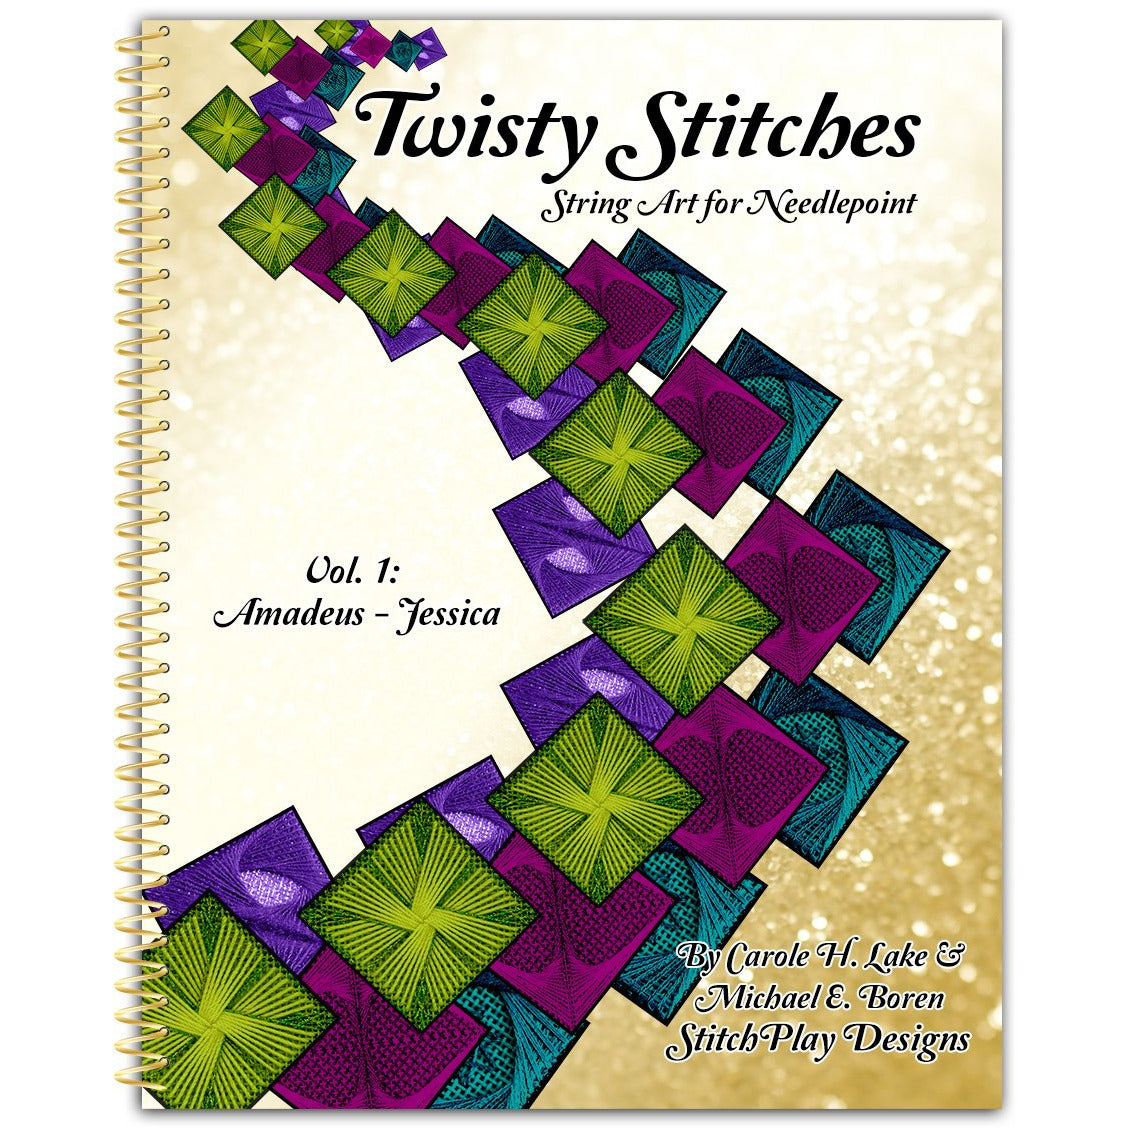 Twisty Stitches Vol. 1 Pattern Book